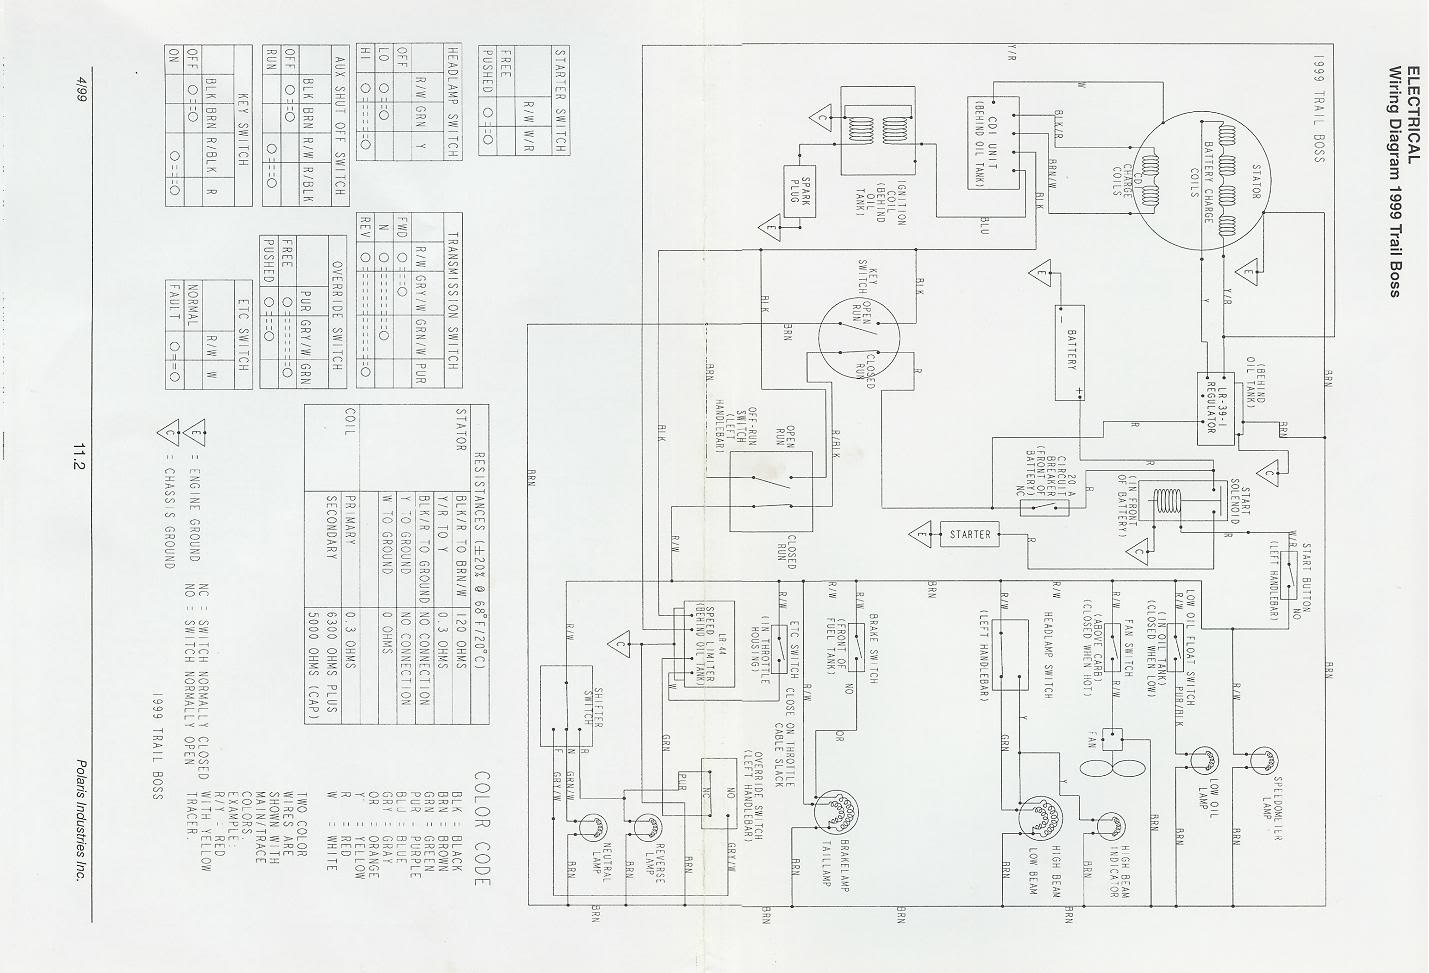 2003 polaris trail boss wiring schematic 1997 polari electrical    schematic       wiring    diagram database  1997 polari electrical    schematic       wiring    diagram database